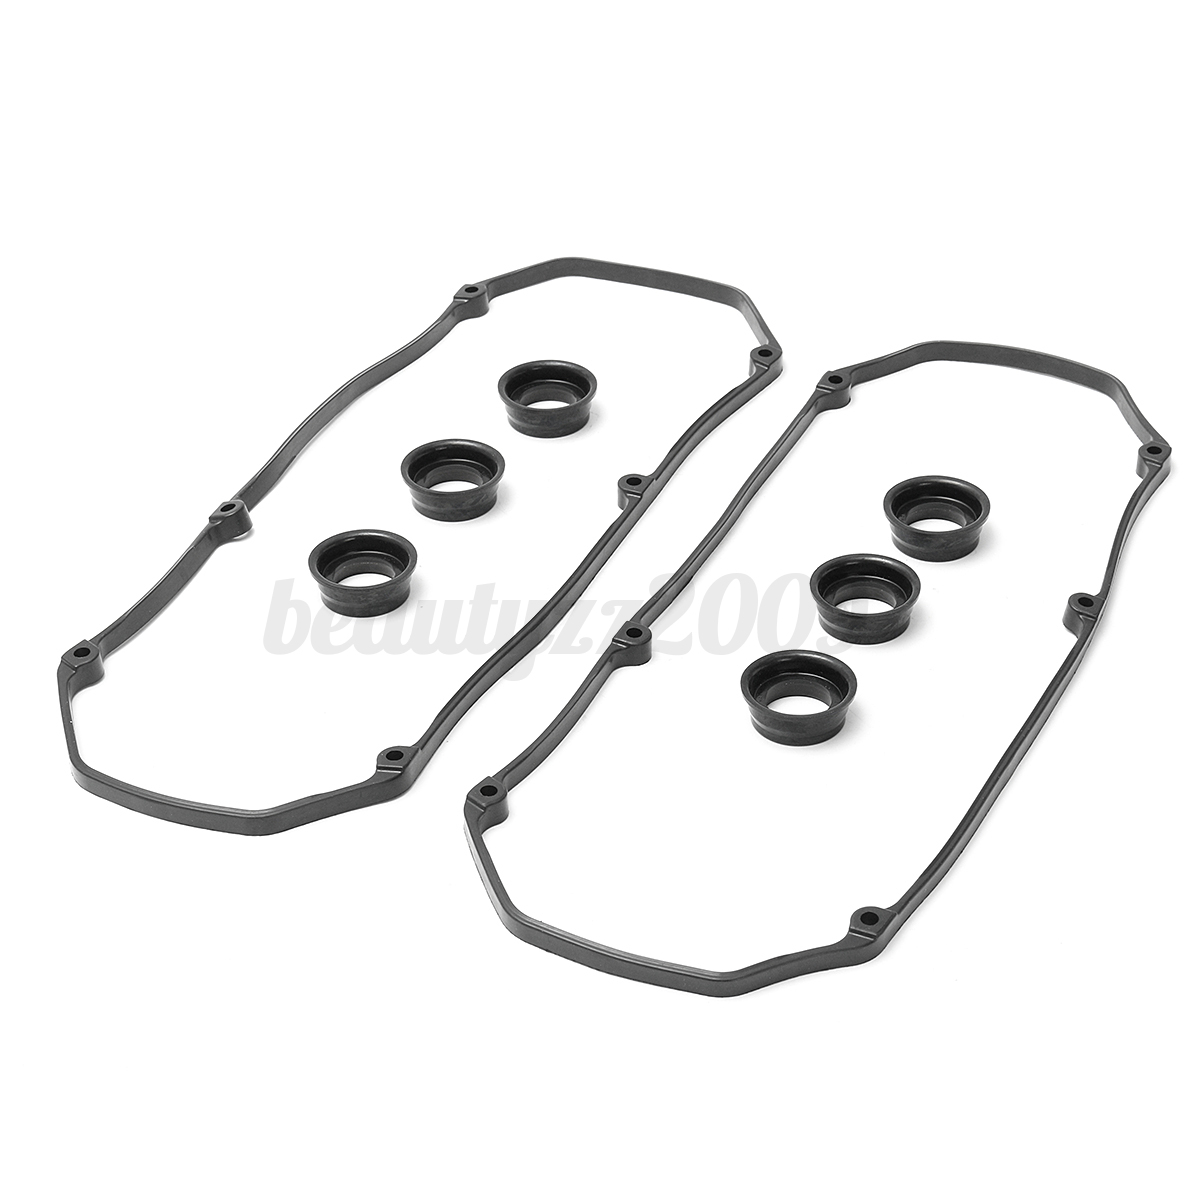 Valve Cover Gasket Set For Dodge Chrysler Dodge 95 06 3 0